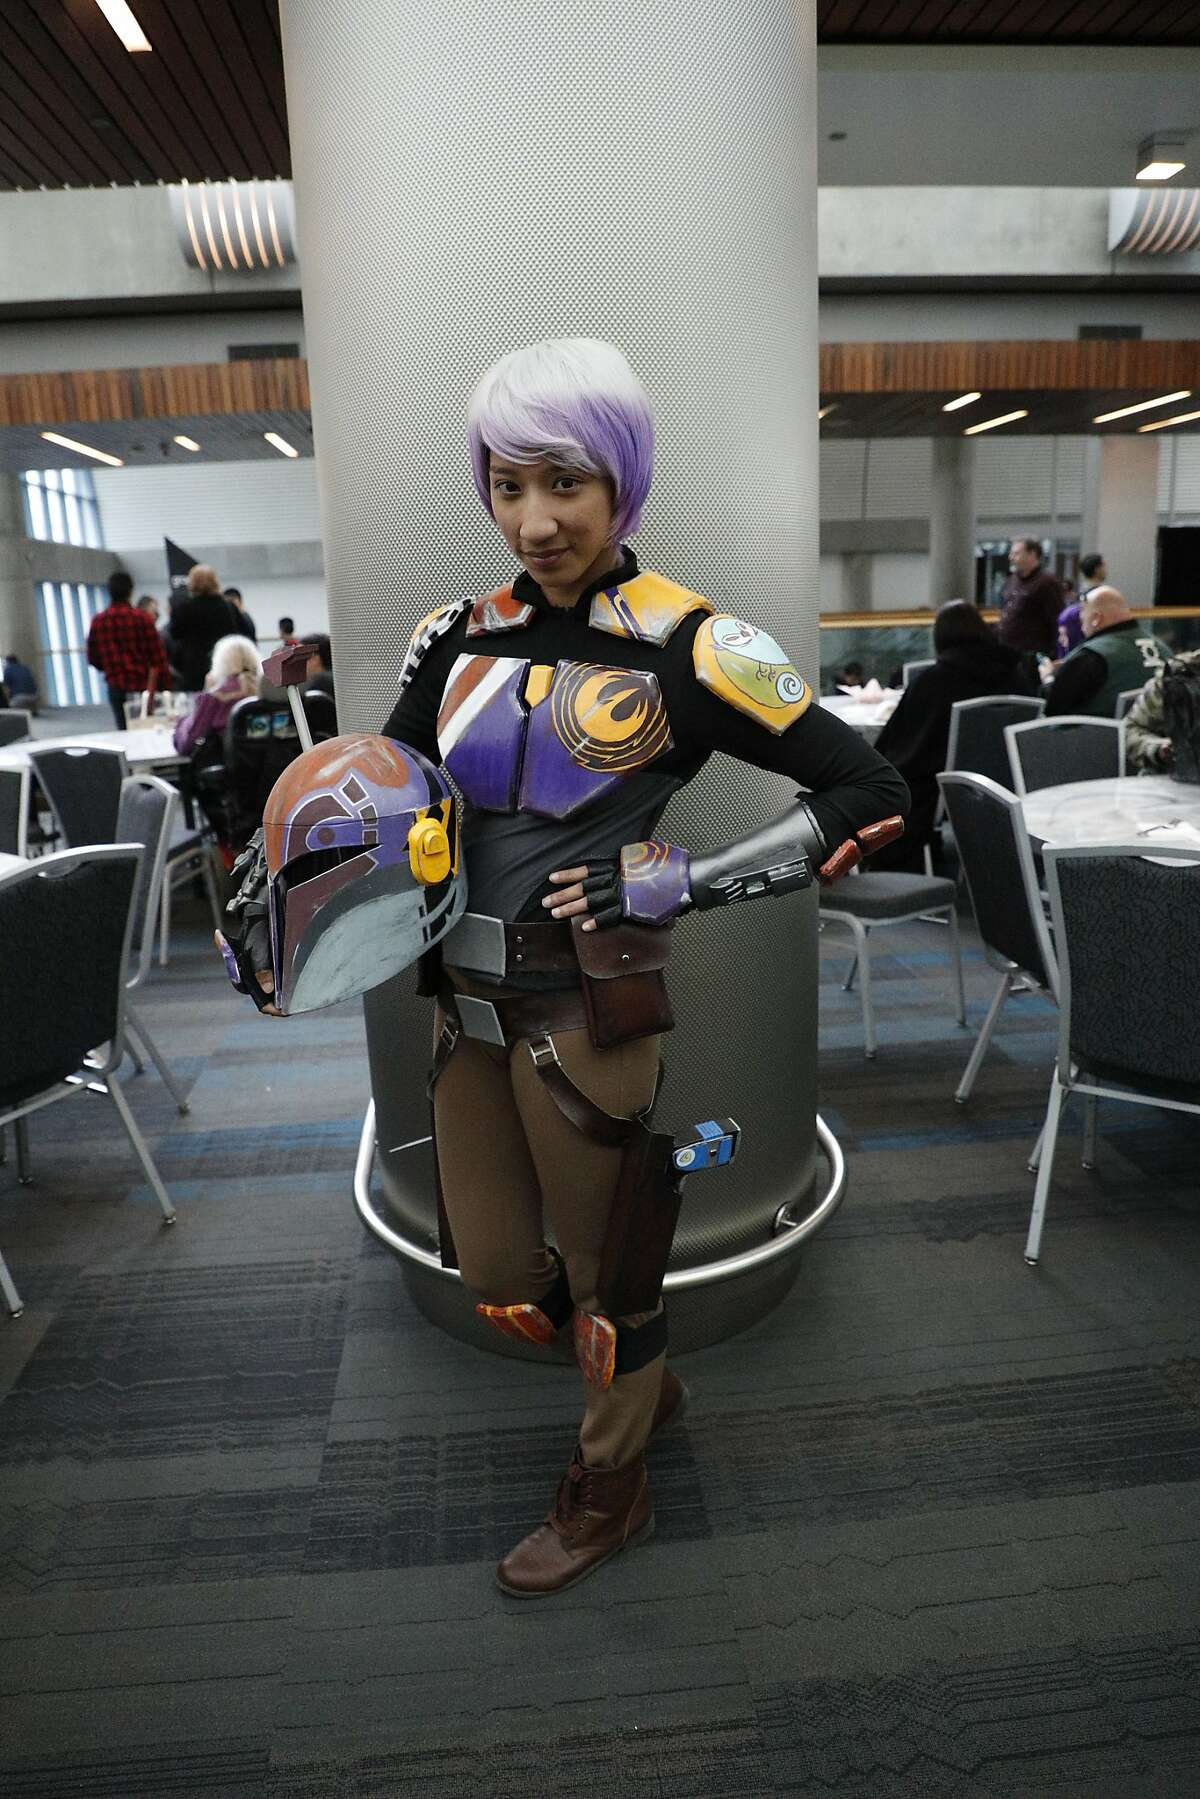 Sabrine Wren in her hand painted costume at Silicon Valley Comic Con on Saturday, April 22, 2017 in San Jose , CA.